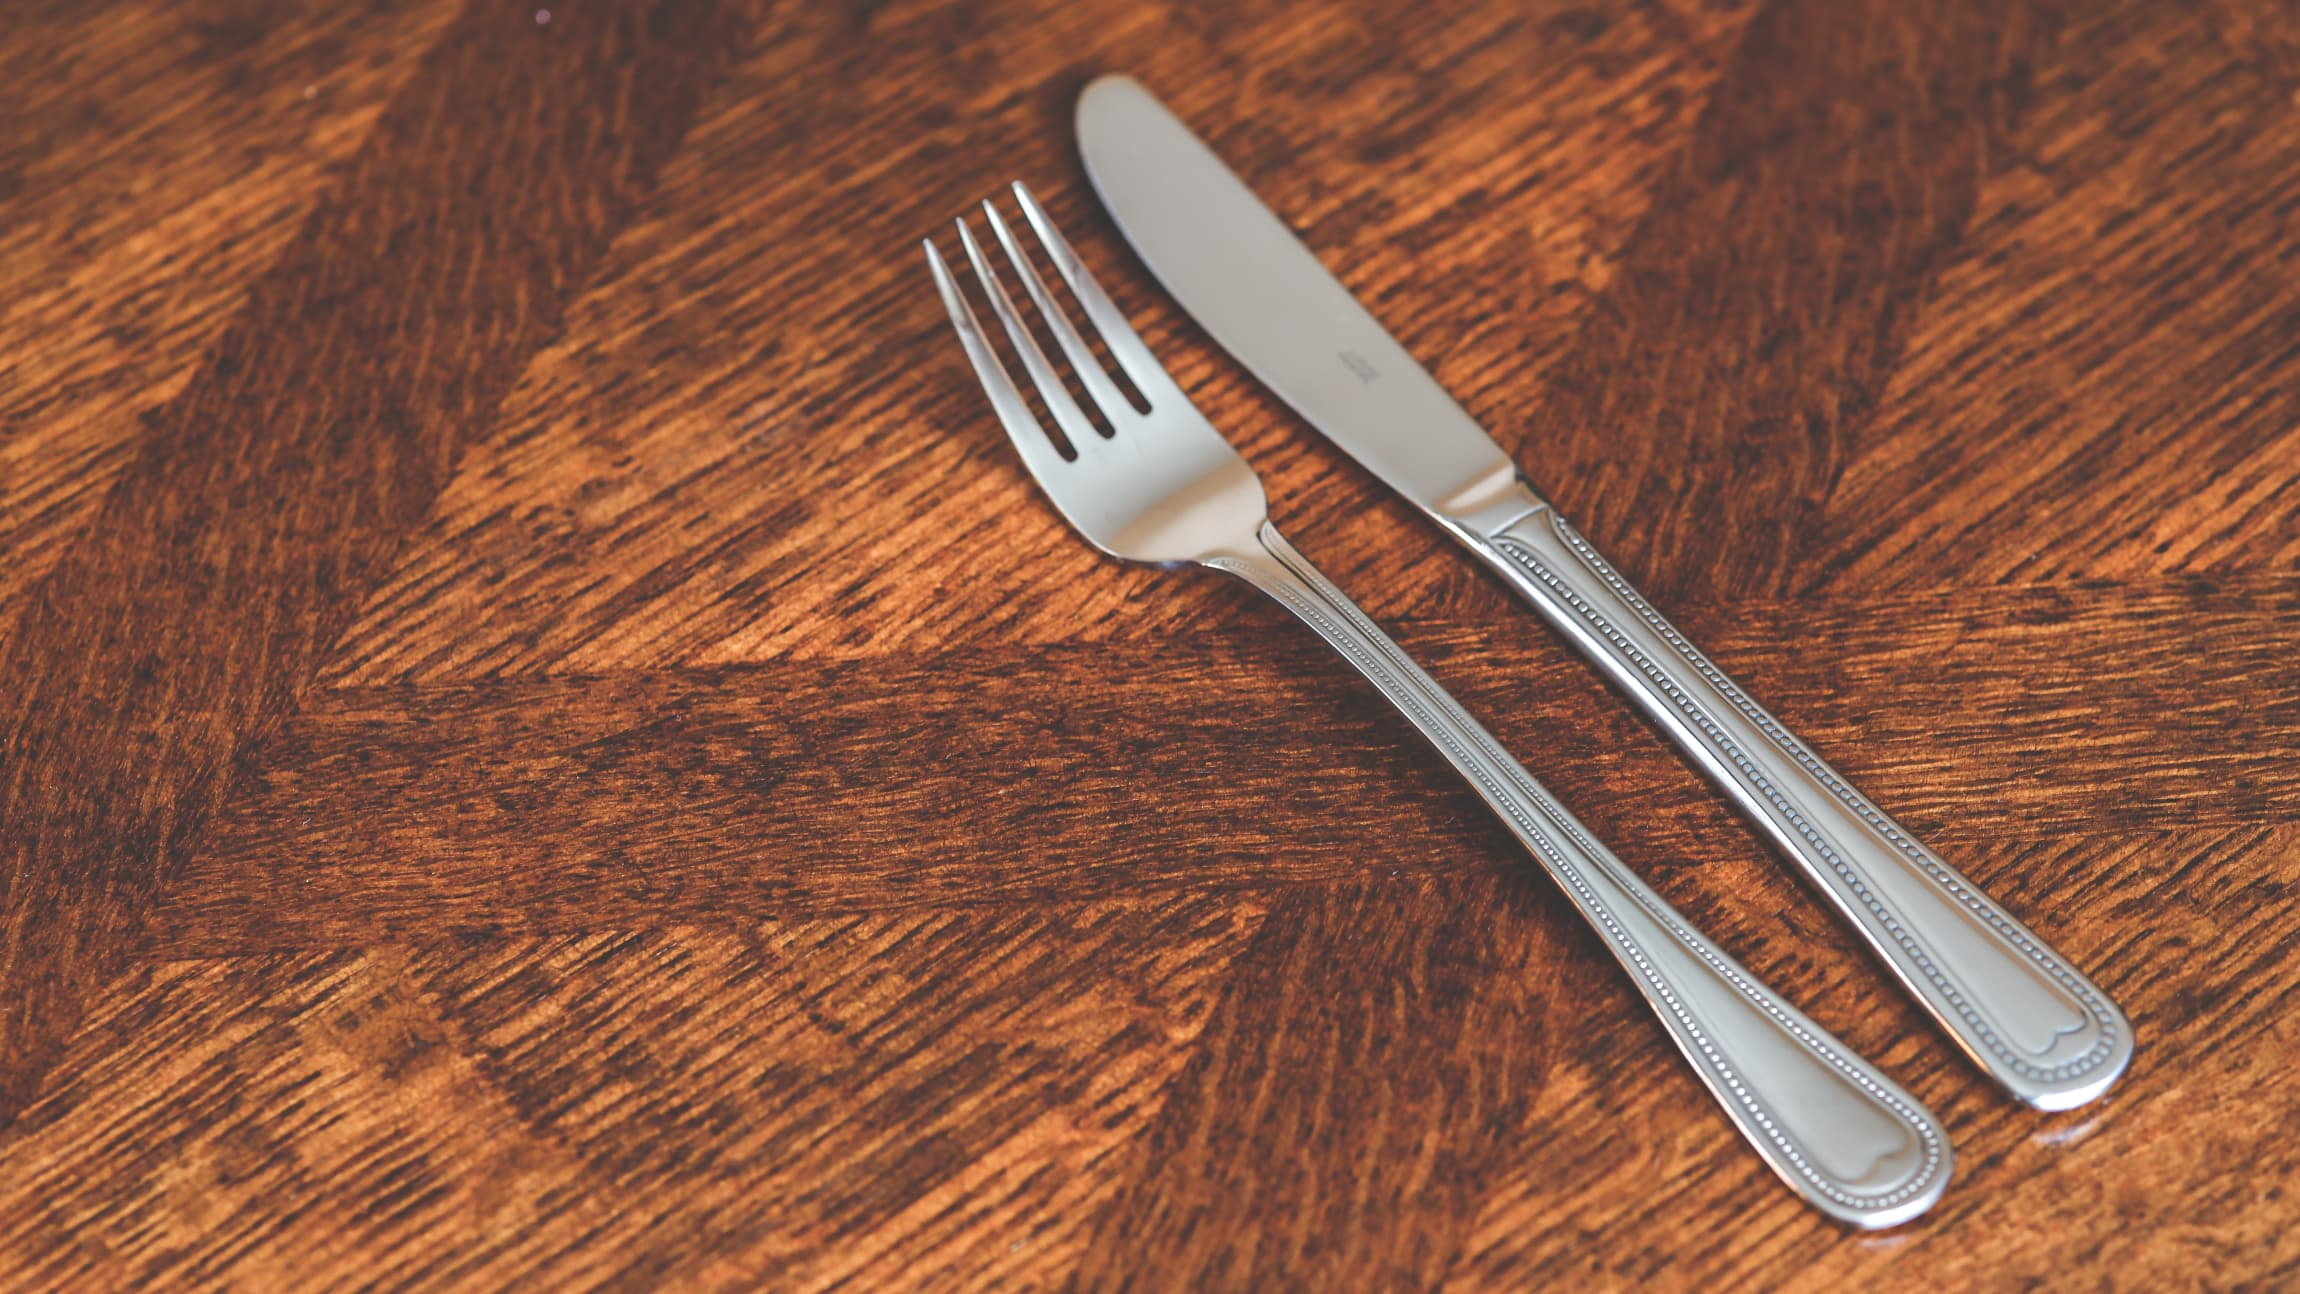 Fork and butter knife lying on a wooden table.